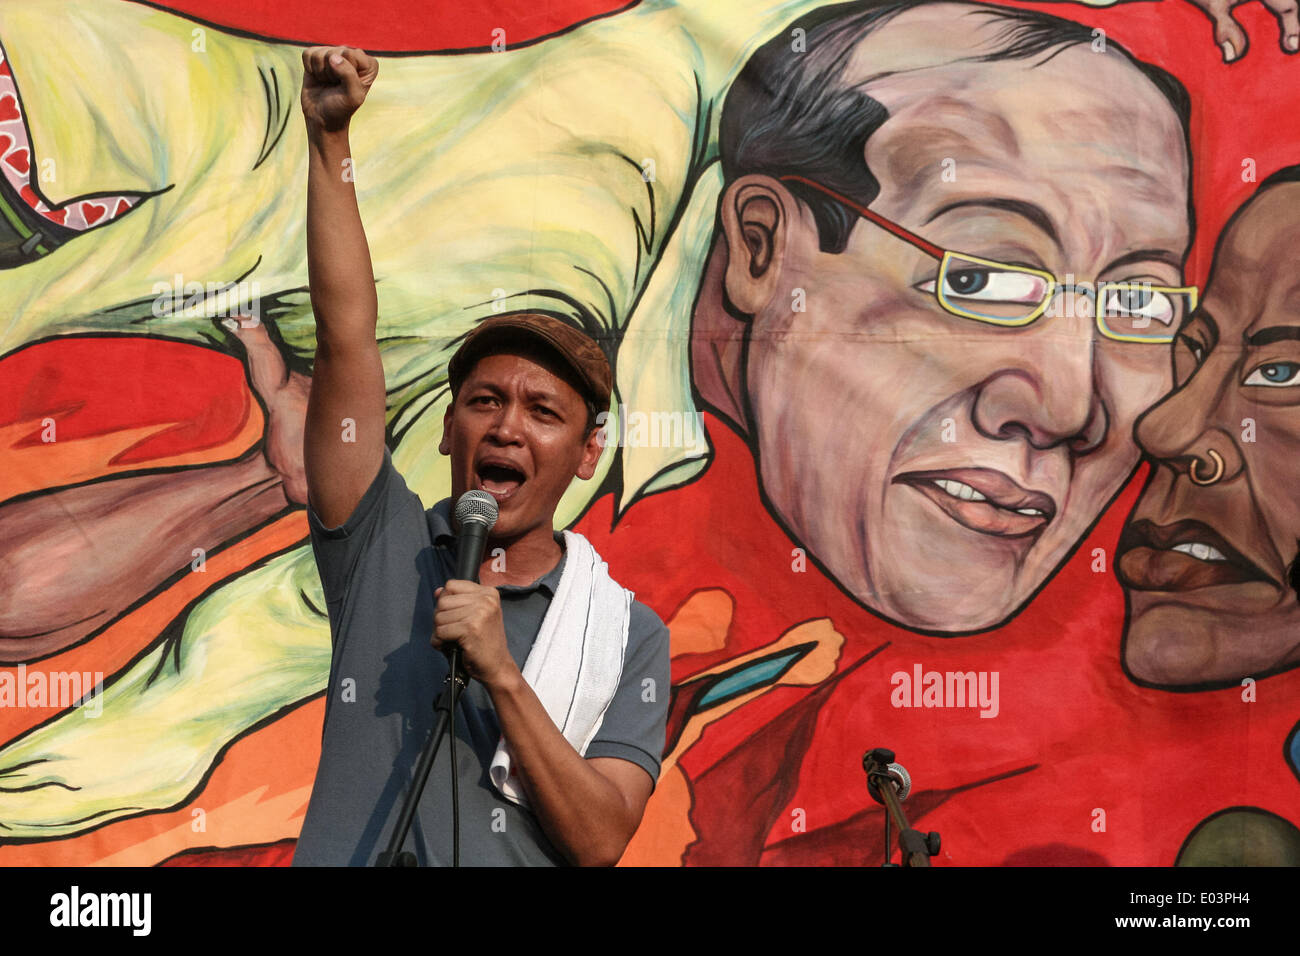 Manila, Philippines. 01st May, 2014. Renato Reyes, secretary general of Bagong Alyansang Makabayan or Bayan, airs his digust against EDCA and the alleged inefficiency of President Aquino to uplift the lives of regular Filipino workers. Hundreds of workers from different militant groups converged at the Mendiola Bridge in Manila to air their sentiments against the Aquino administration's alleged implementation of 'Cheap Labor Policy'. Credit:  PACIFIC PRESS/Alamy Live News - Stock Image